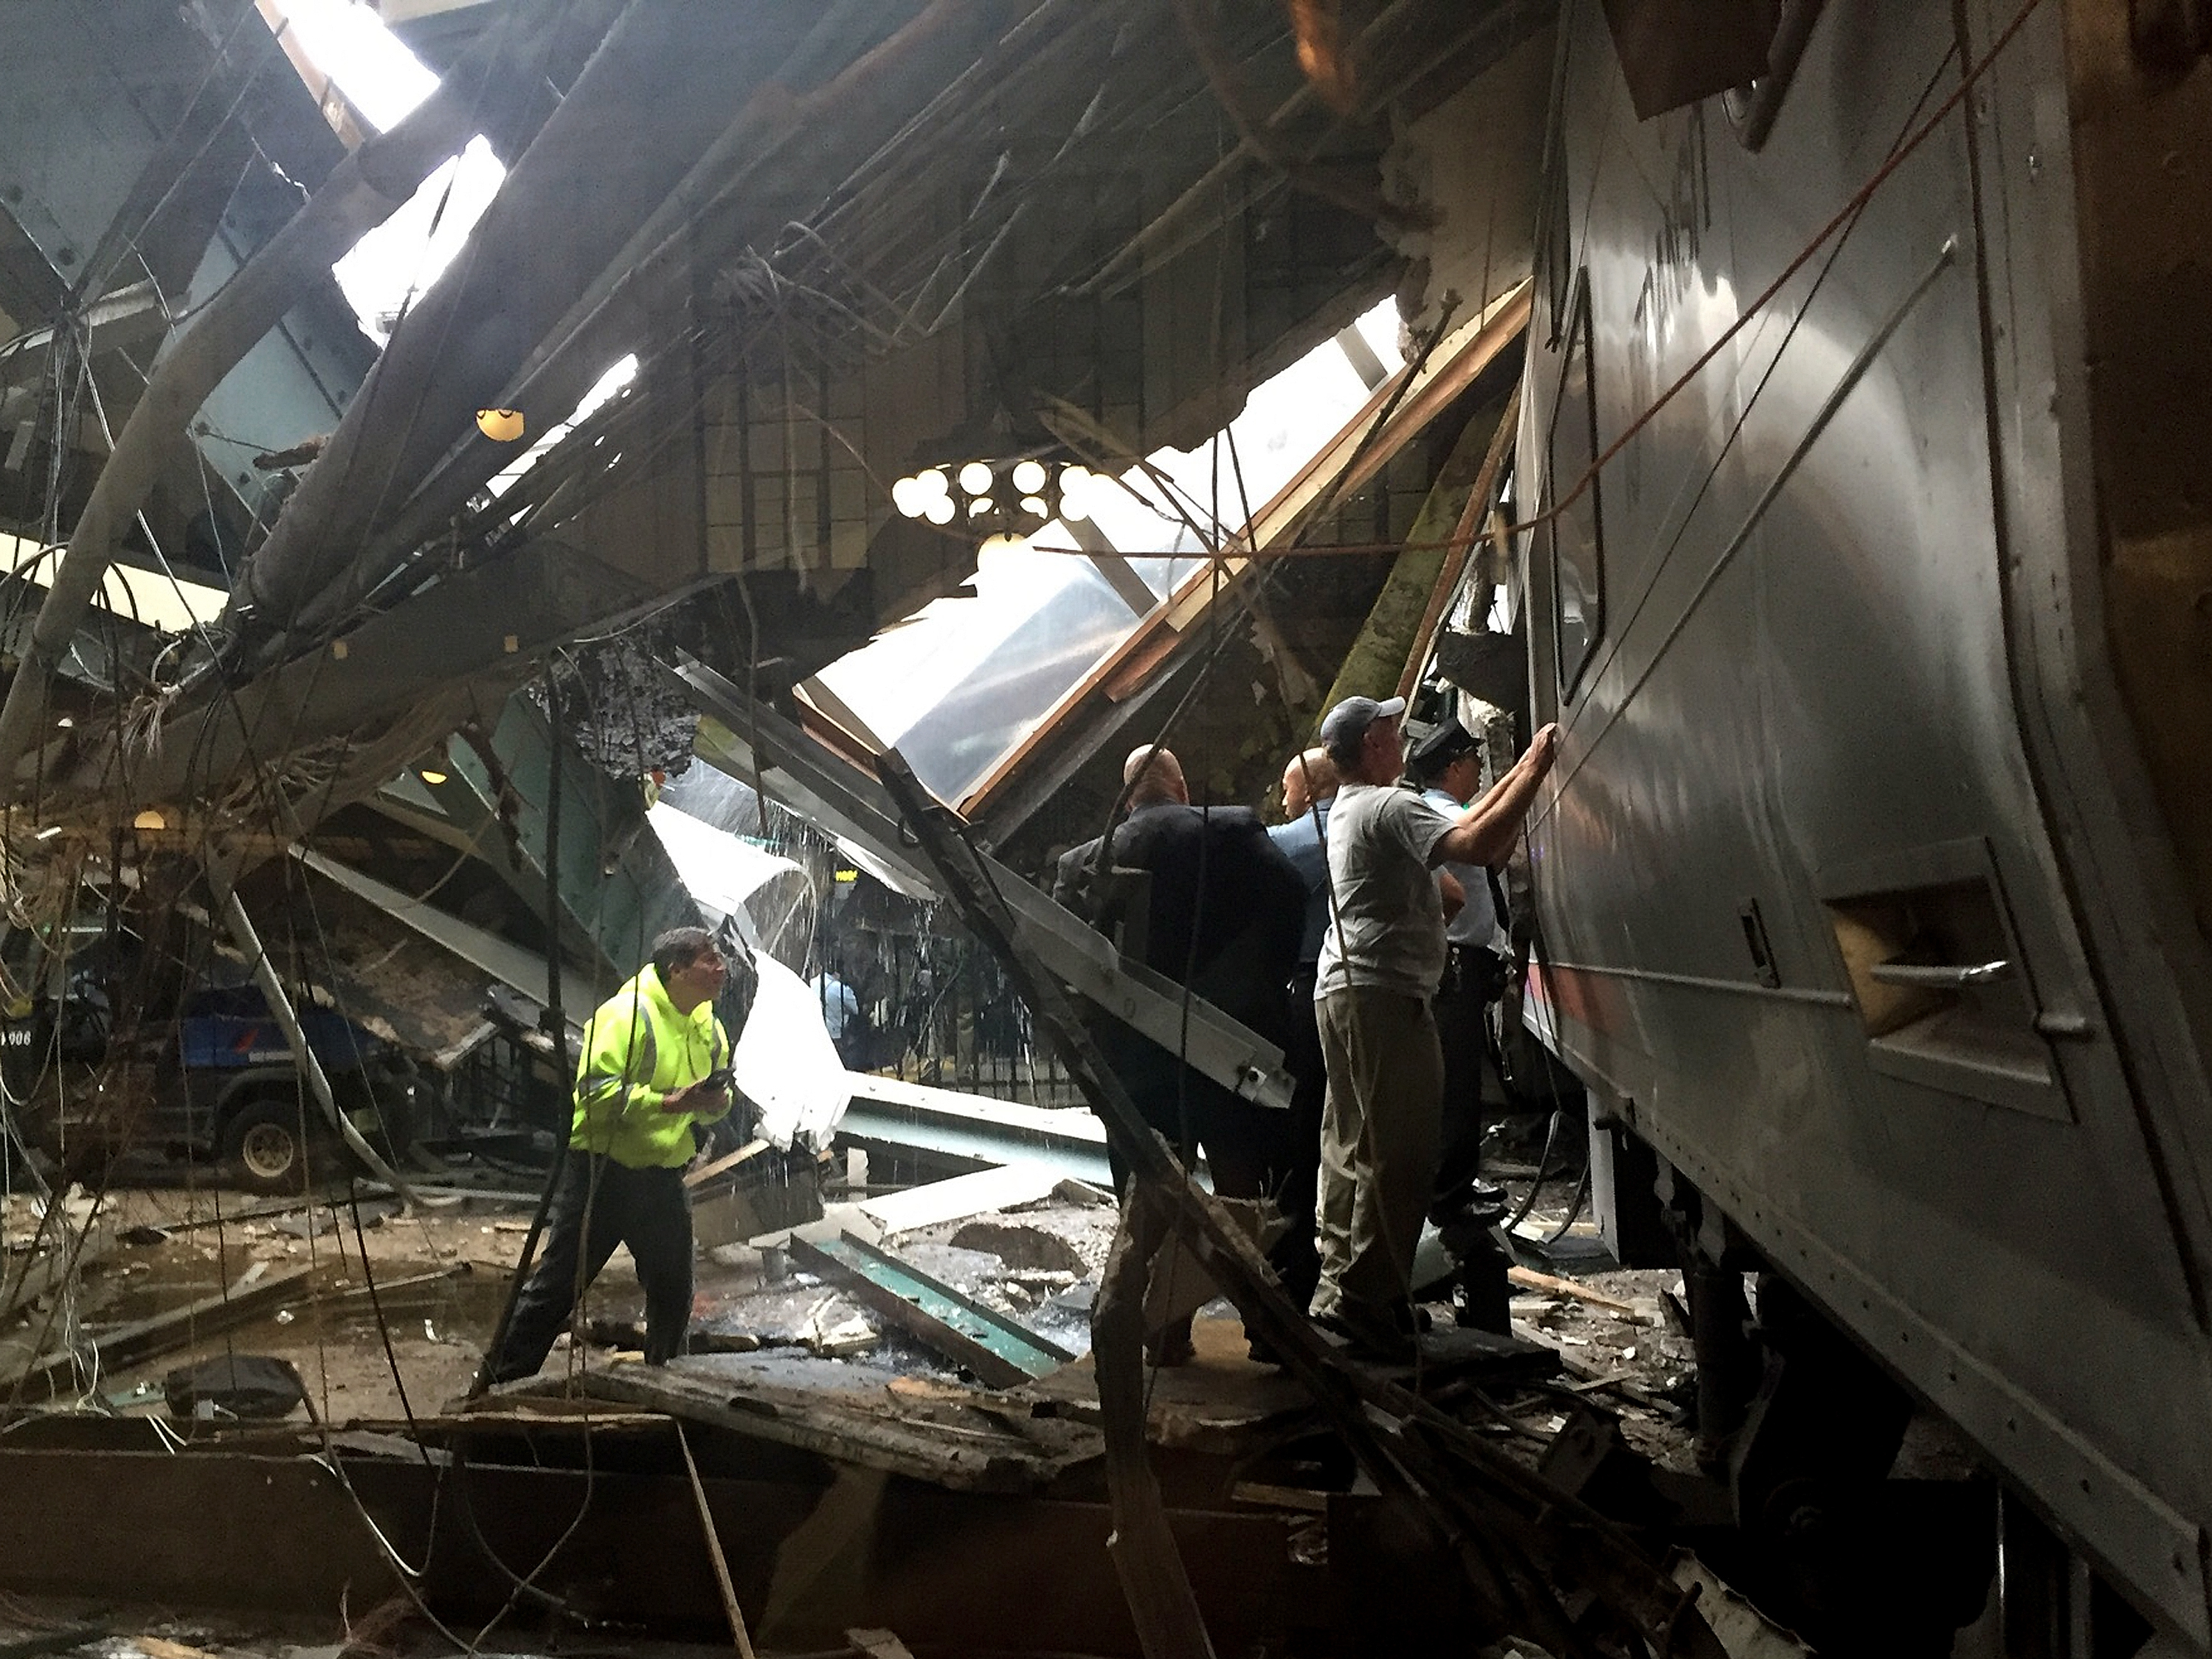 'It Was Going Full, Full Force': Train Crashes Into Hoboken Terminal, Killing 1